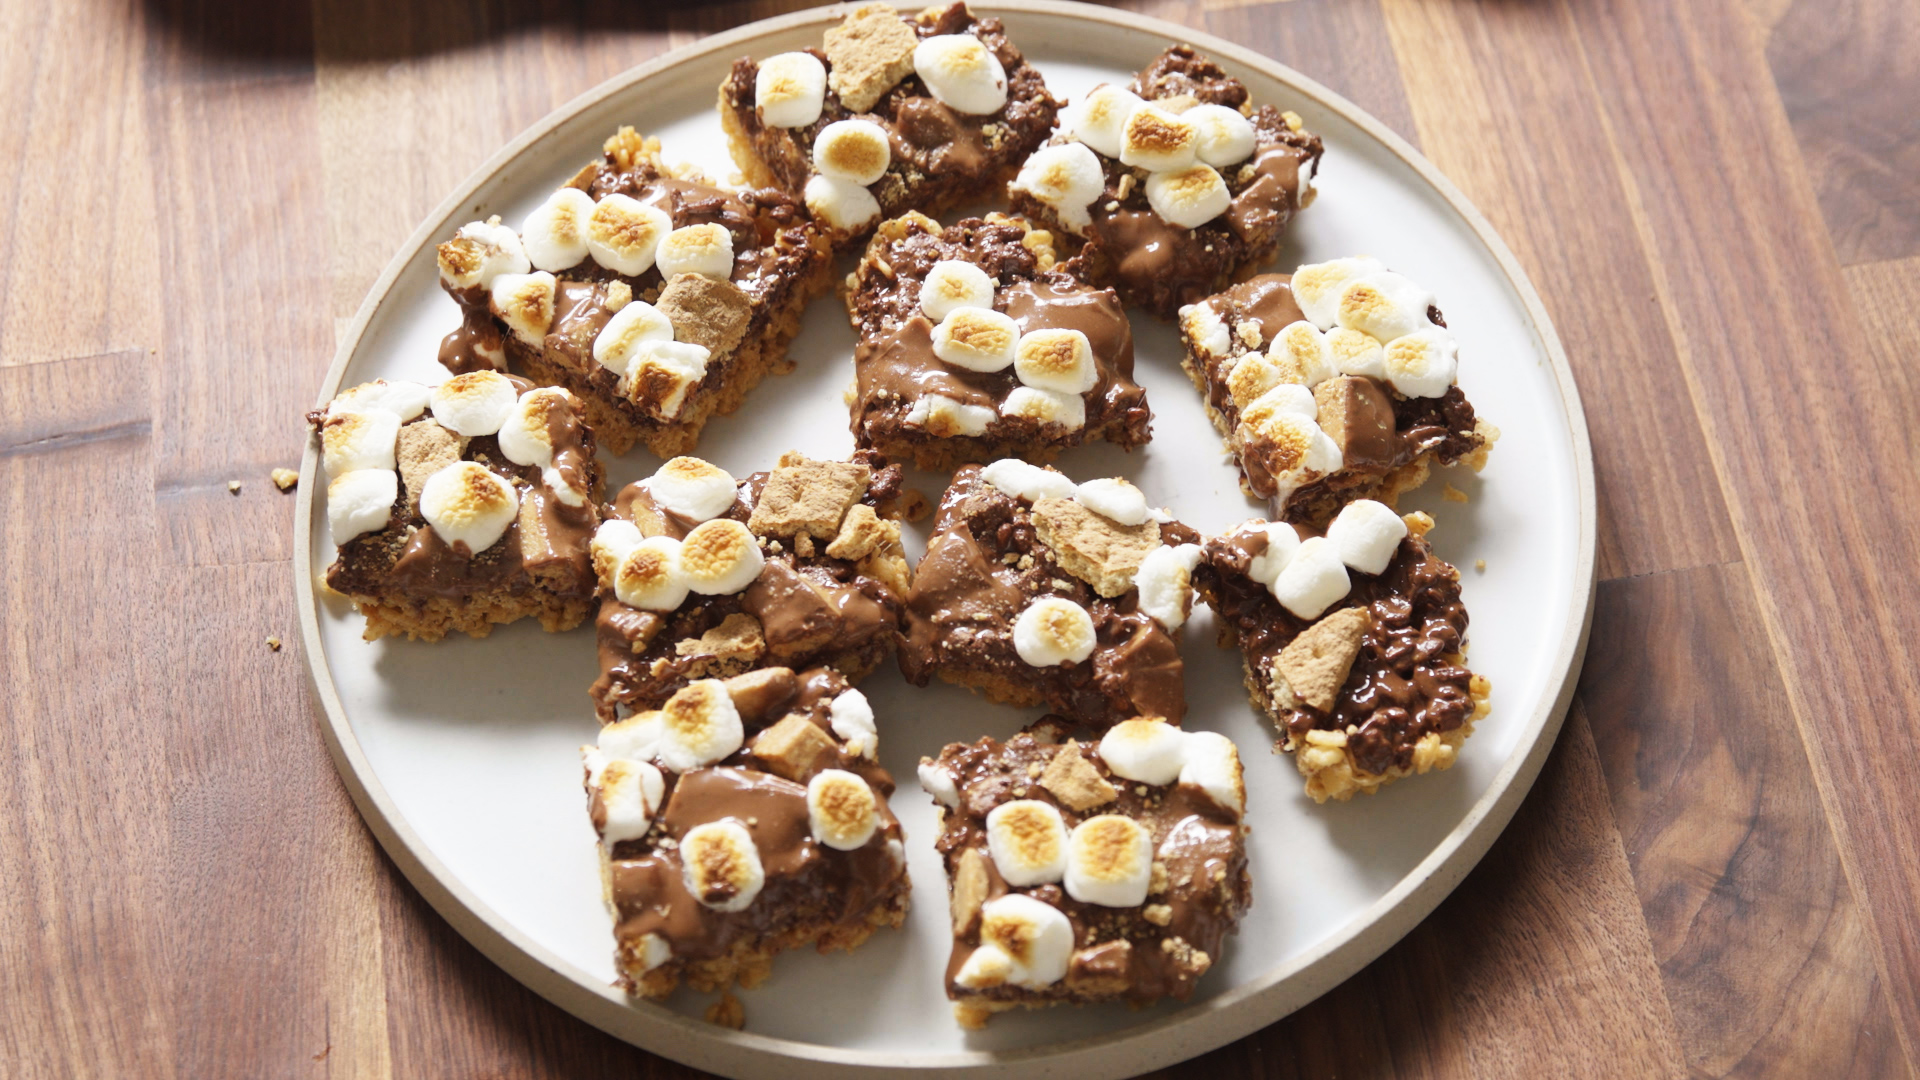 Reese's S'mores Bars